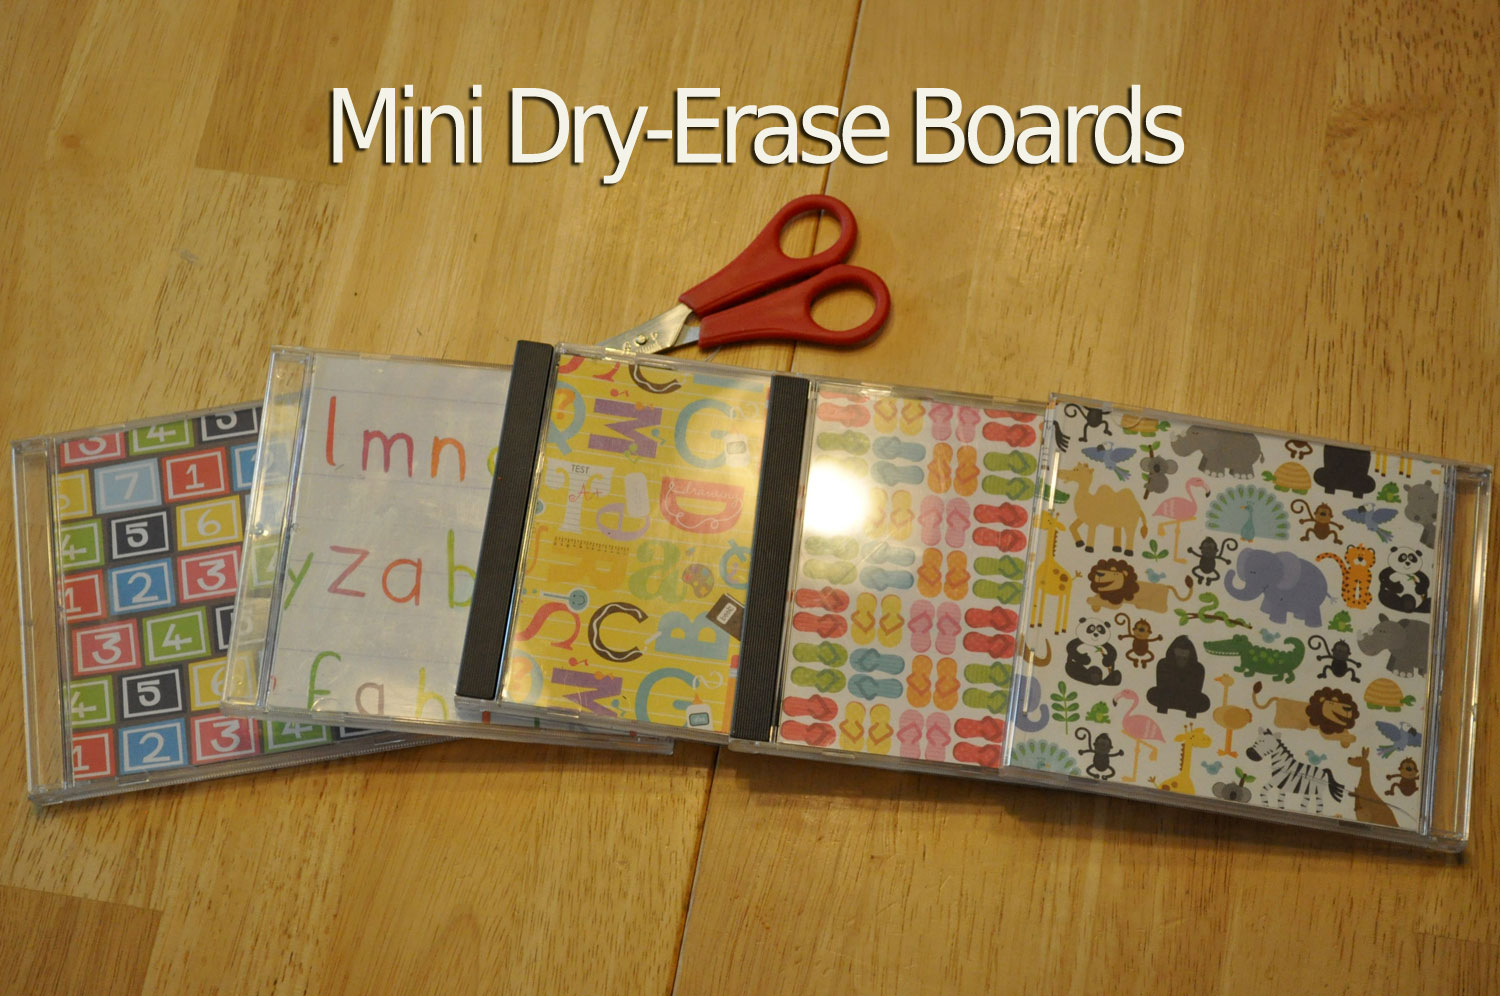 Scrapbook paper case - We Picked Some Fun Scrapbook Paper And Slid It Into An Empty Cd Case You Can Put It On The Patterned Side And Circle Things Or Do Colors Or Objects